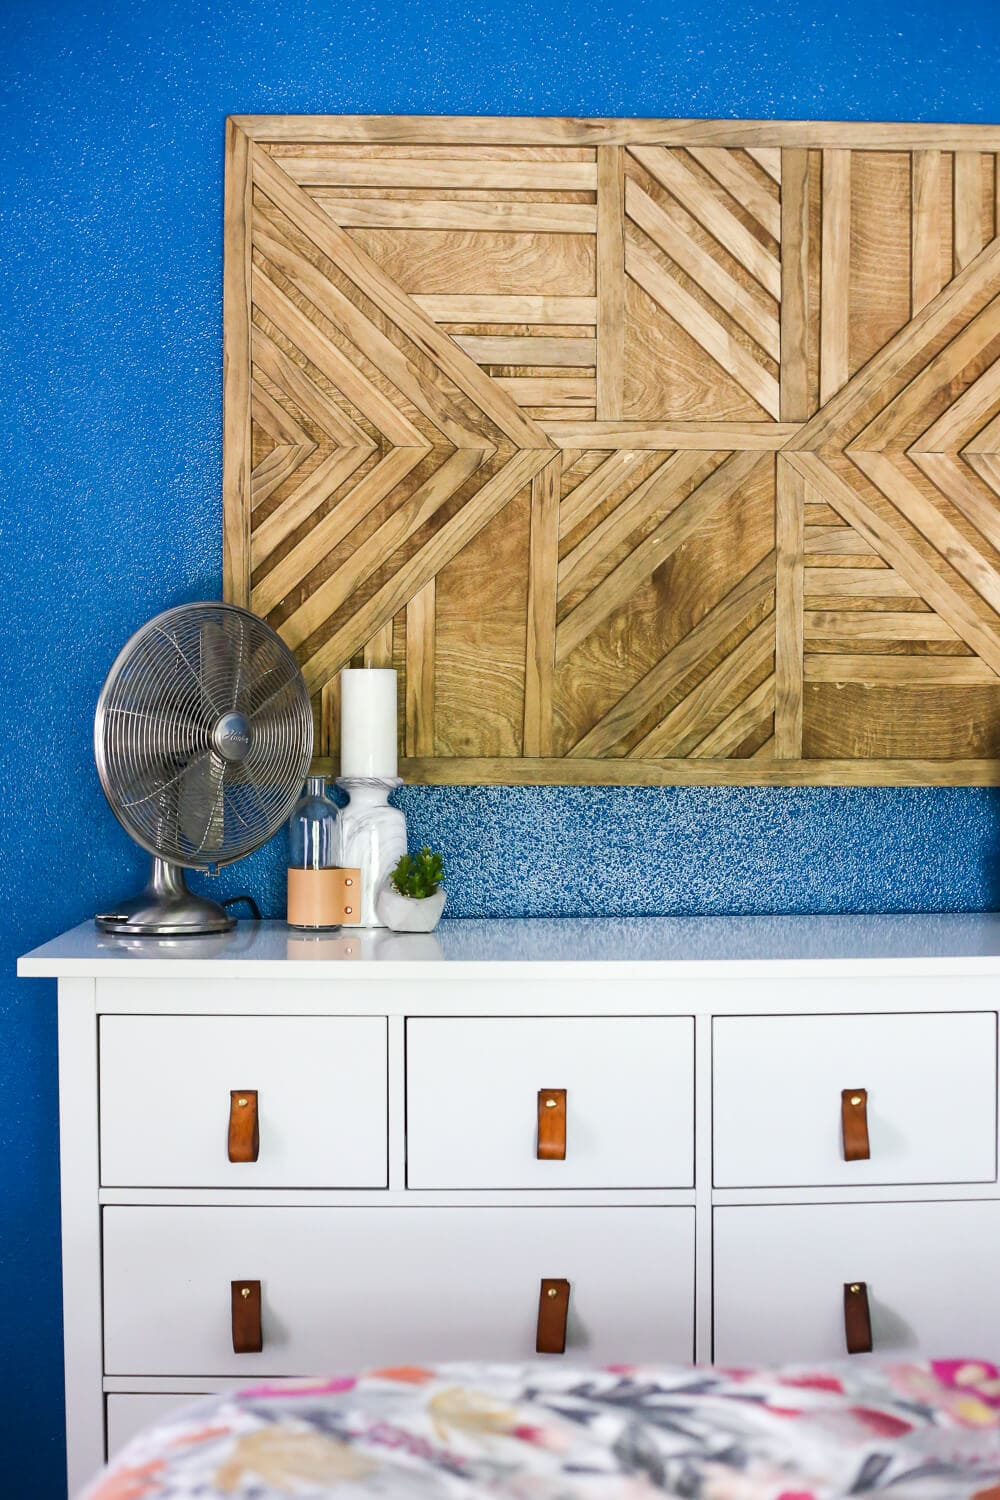 DIY Wood Wall Art How to